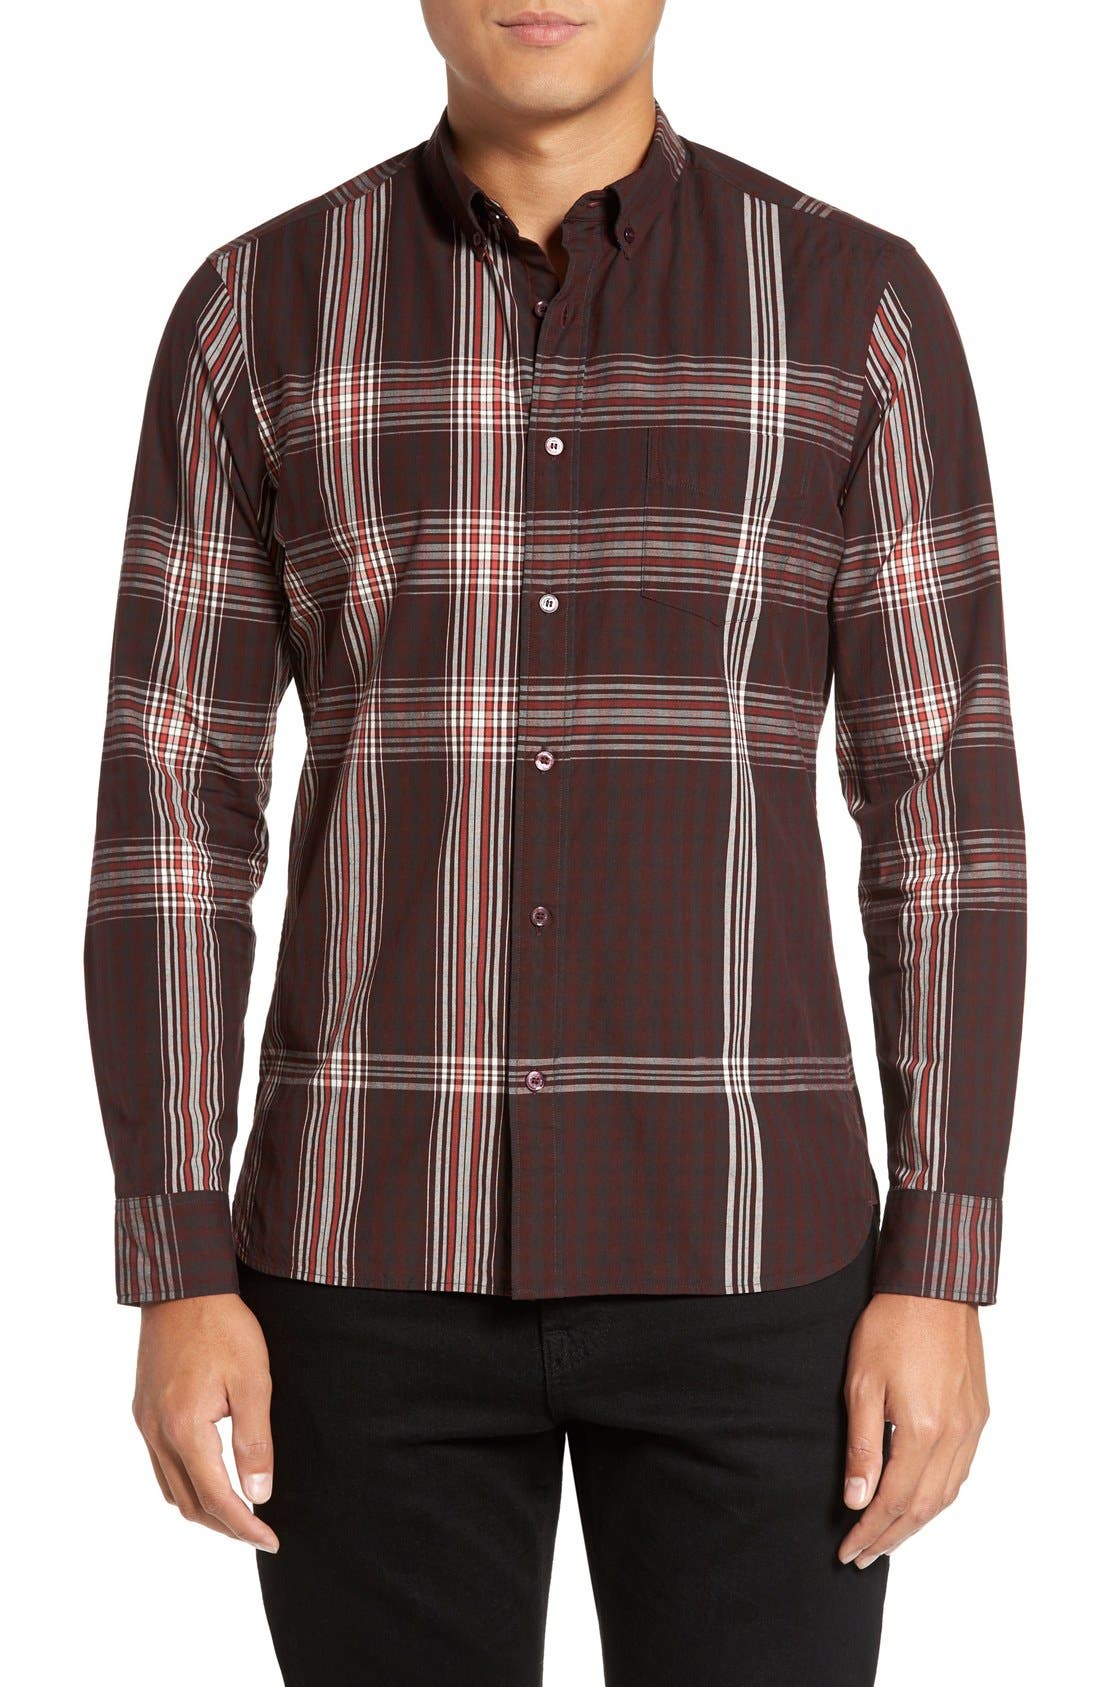 Alternate Image 1 Selected - Burberry 'Brit' Trim Fit Long Sleeve Sport Shirt